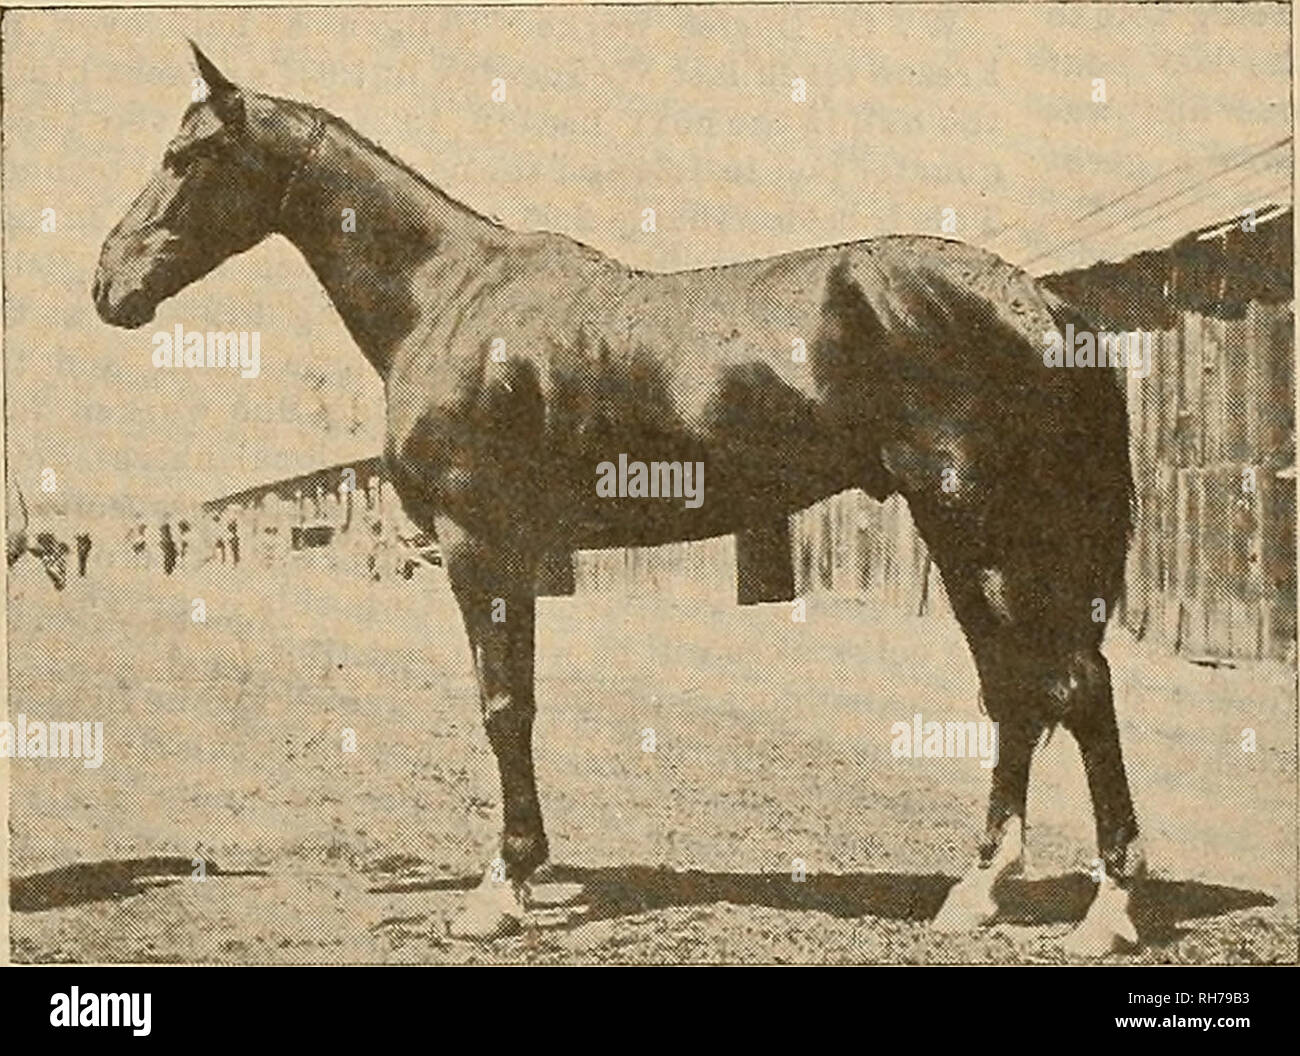 . Breeder and sportsman. Horses. July 22, 1905] mxc gvesbev unfc ^povtsman b The horseB bred by the Occidental Land and Im- provement Company of Sharon, Cal., are large, band- some, sound and serviceable. A consignment of thirty of them will be sold by-Fred H. Chase & Co. at 1732 Market street next Monday evening. Rosalind by Stam B. now carries a reoord of 2:21}, made in a winning race at Pueblo, Colorado. It la said that Stanley Dillon 2:07$ will not be a member of Ed Geers' string after the close of the Detroit meeting next week. B. S. Dillon started twice at the New HaveD, Con- necticu - Stock Image